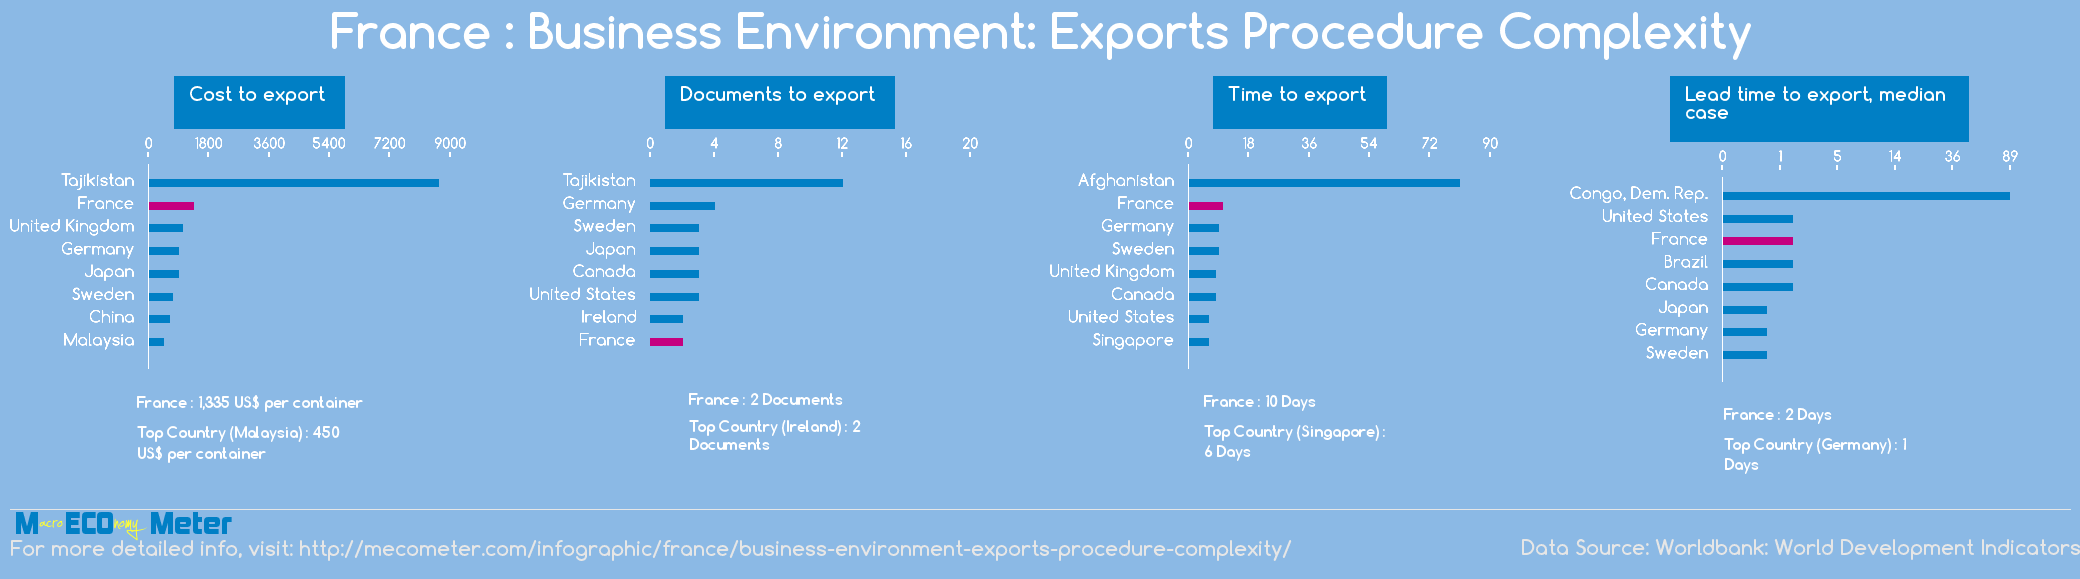 France : Business Environment: Exports Procedure Complexity